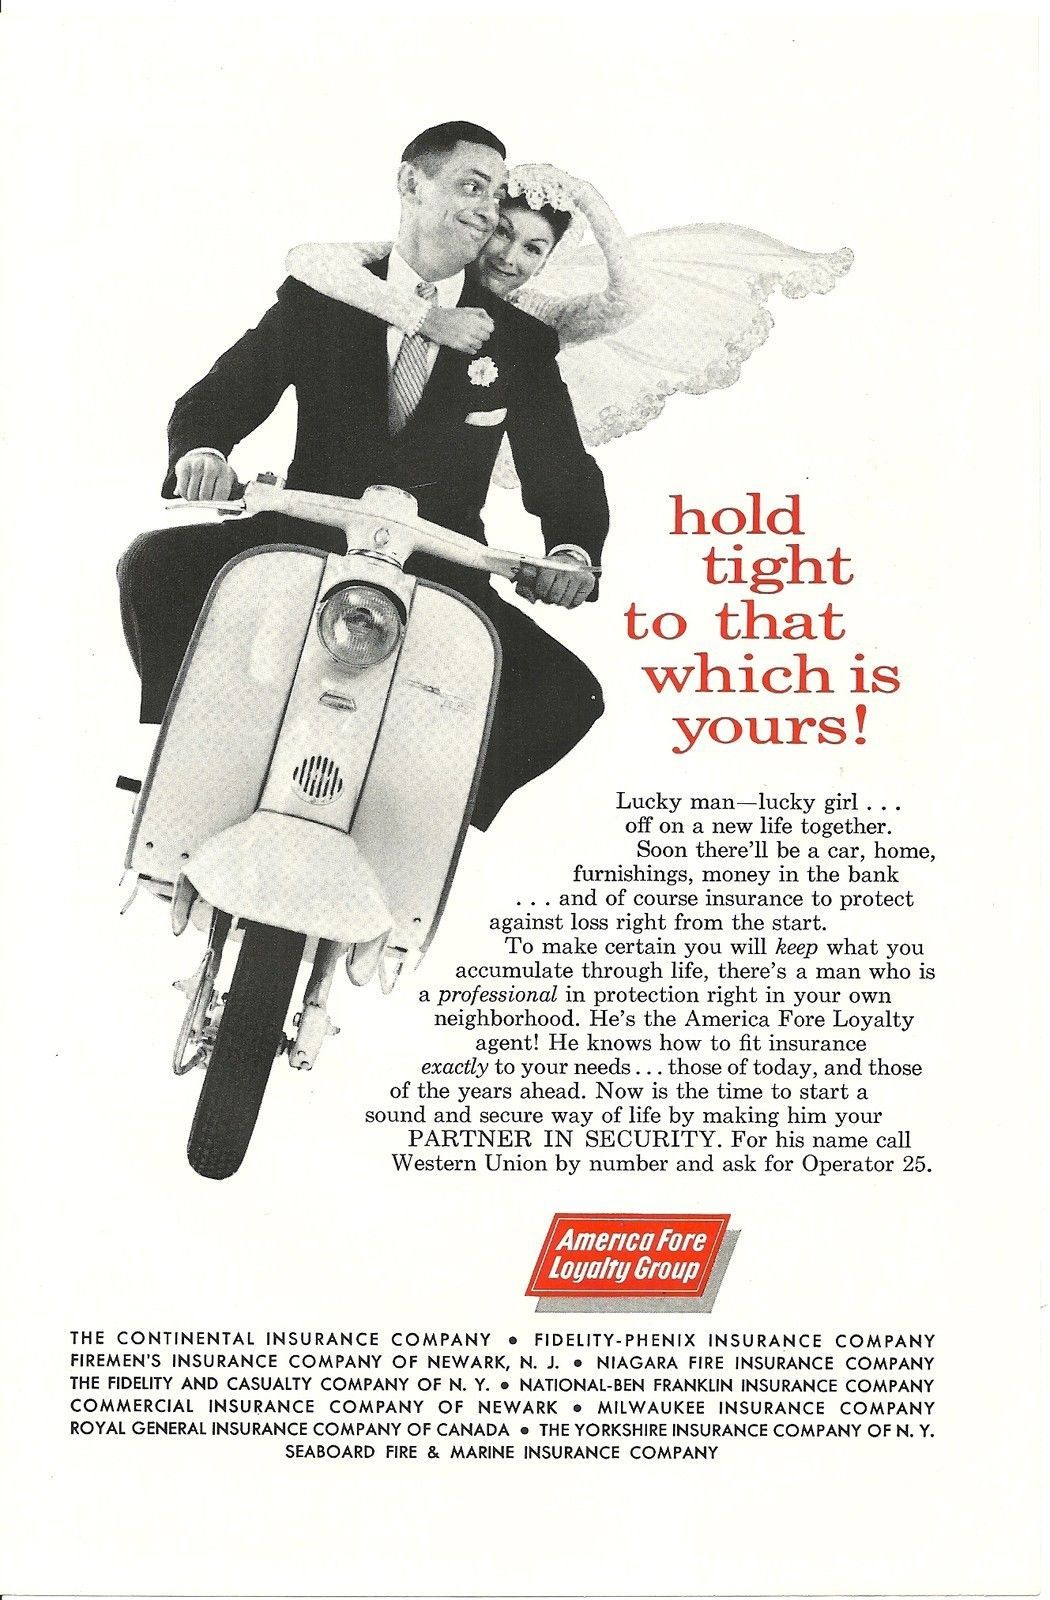 Print Ad Wedding Bride Scooter America Fore Loyalty Group 1960